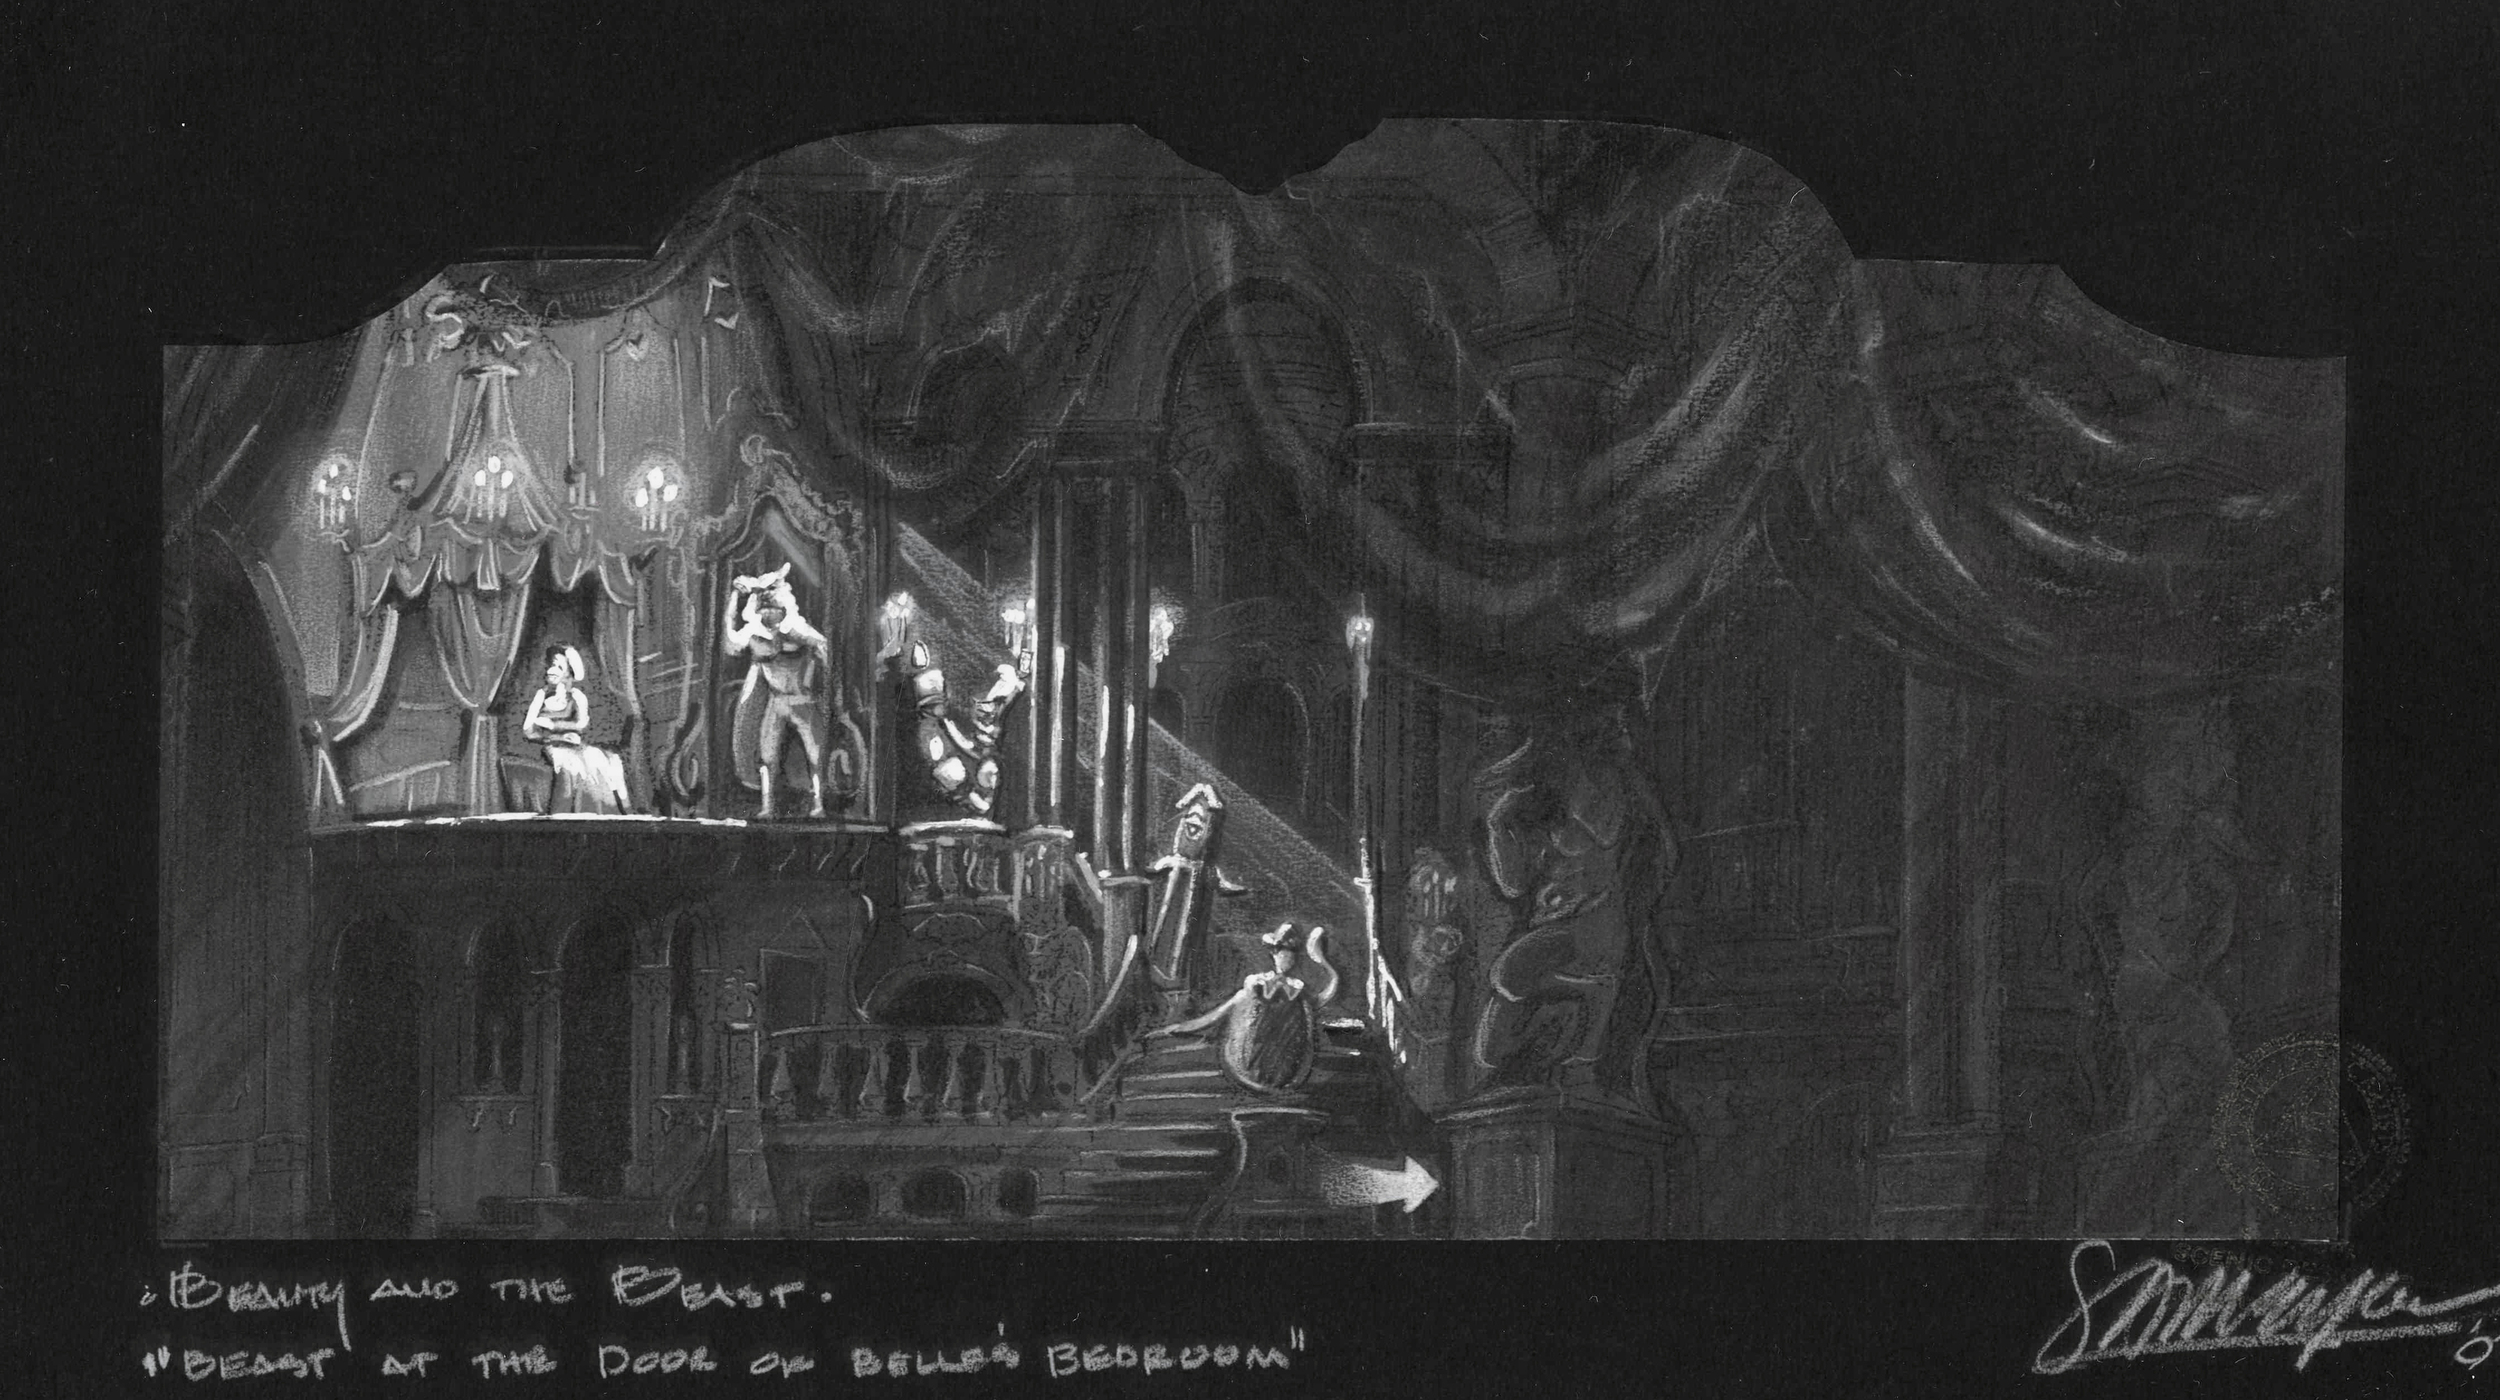 Belle's Bedroom.B&W concept rendering.Palace Theatre NYC